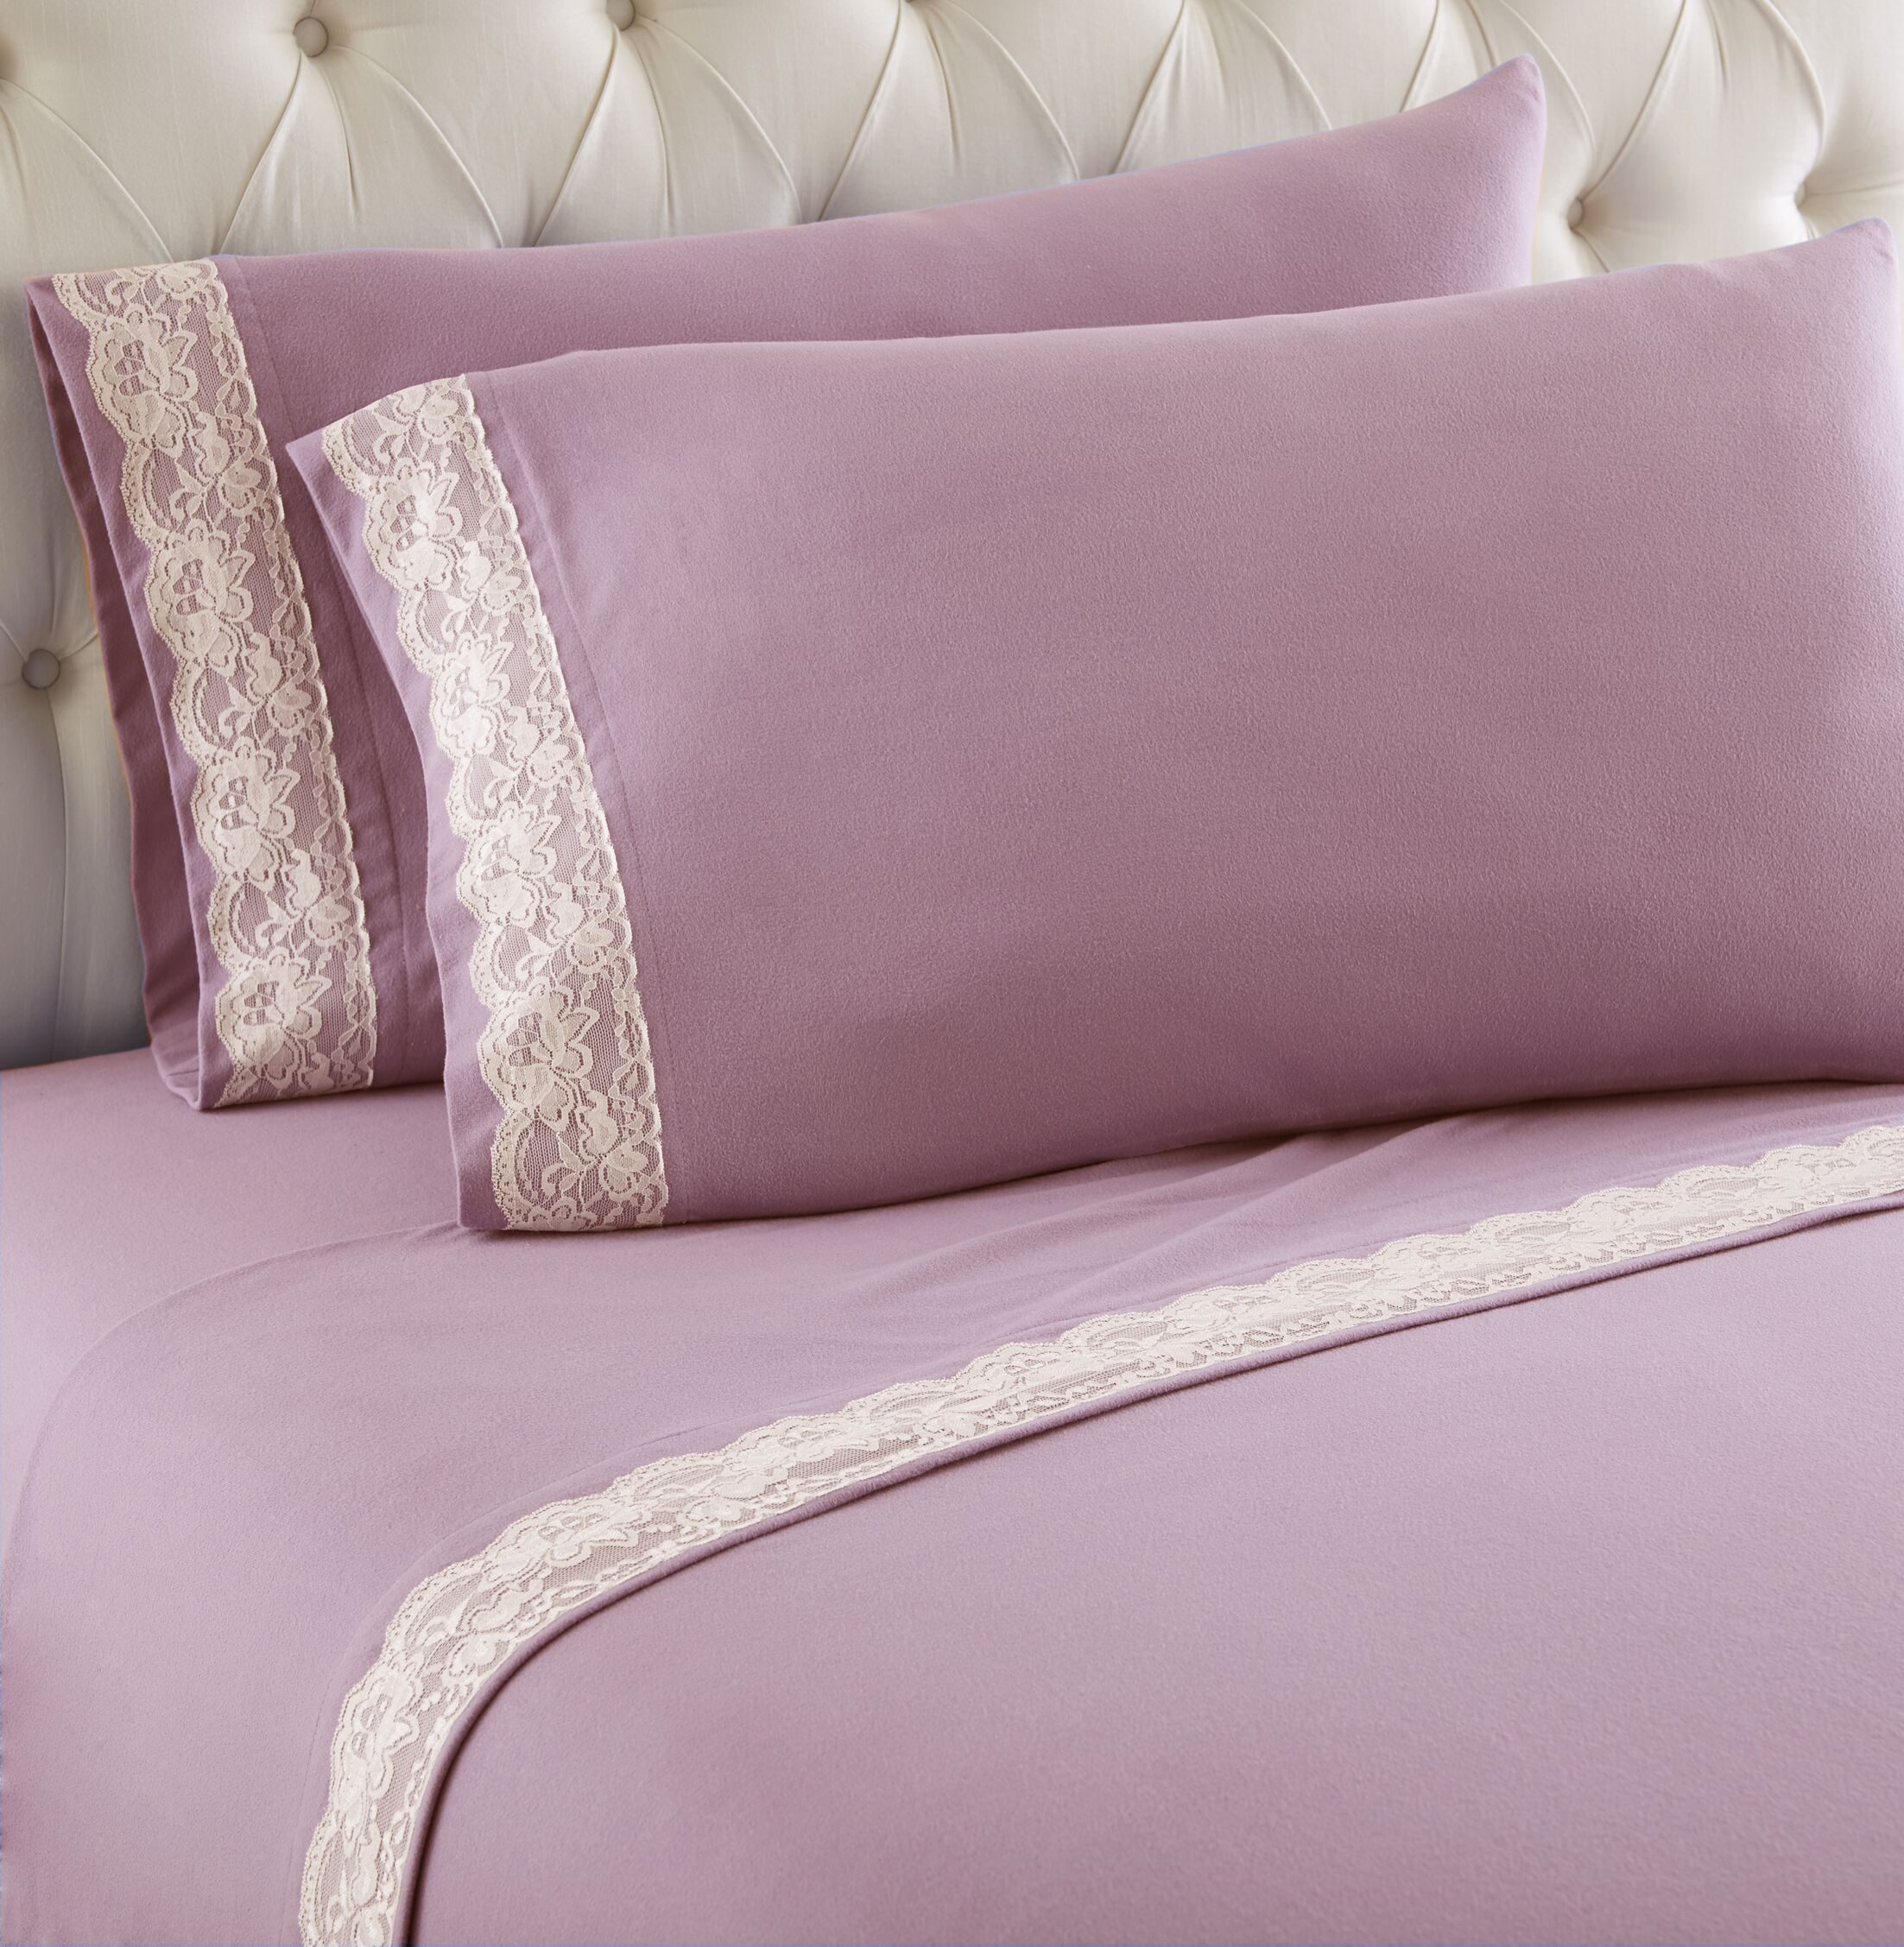 Georgette Lace Edged Sheet Set Size: California King, Color: Frosted Rose